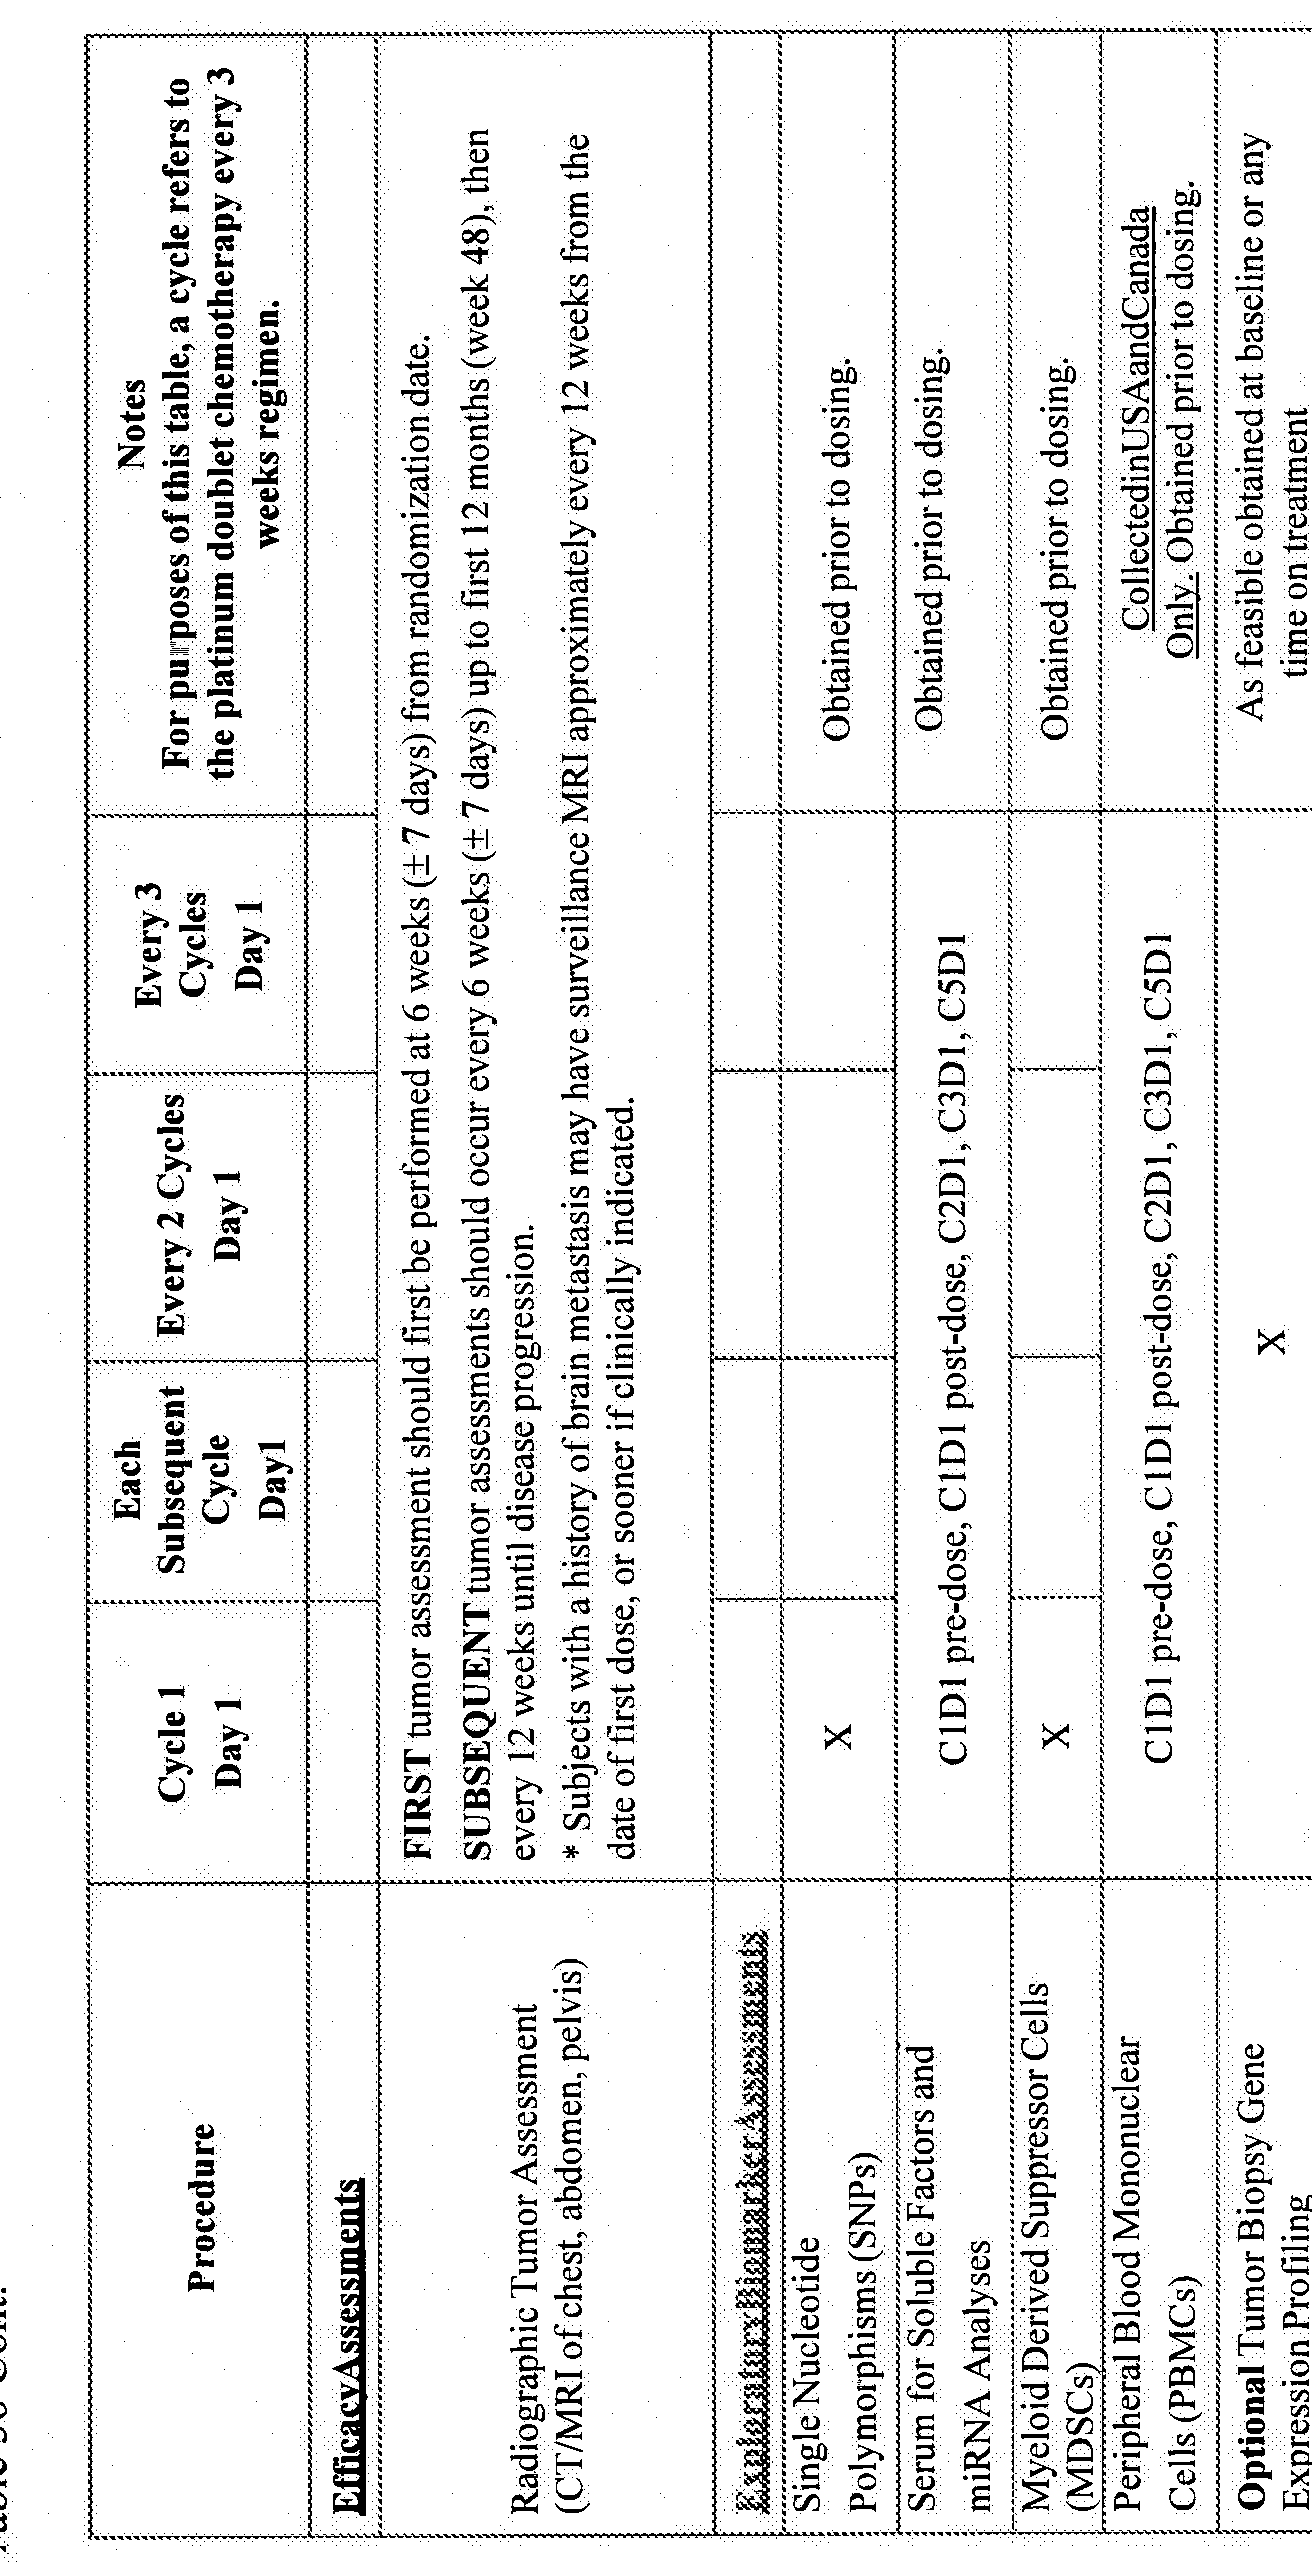 WO2015176033A1 - Treatment of lung cancer using a